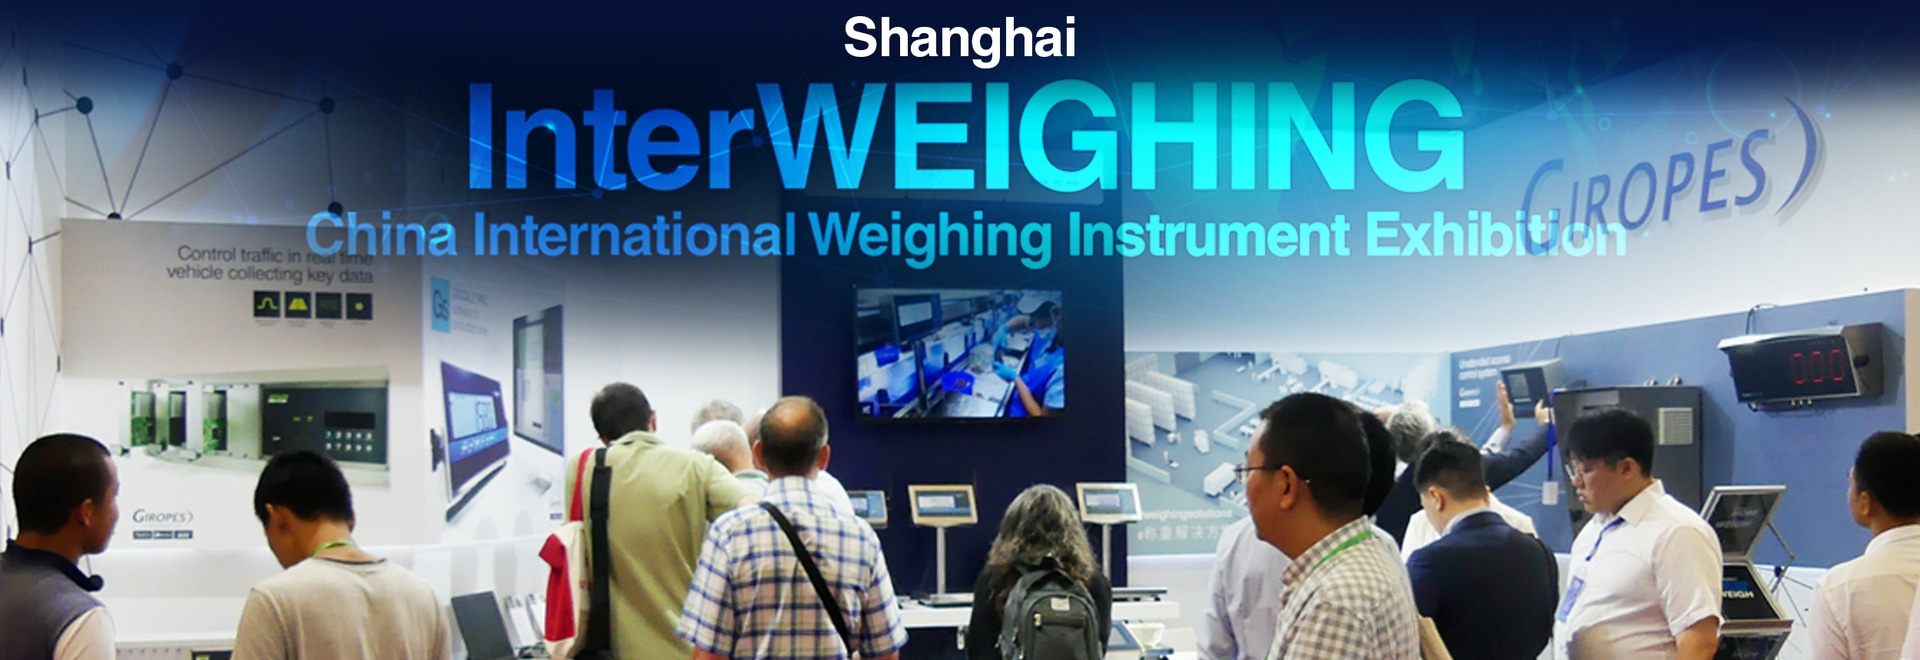 Interweighing Shanghai: showcasing our solutions in the world of weighing